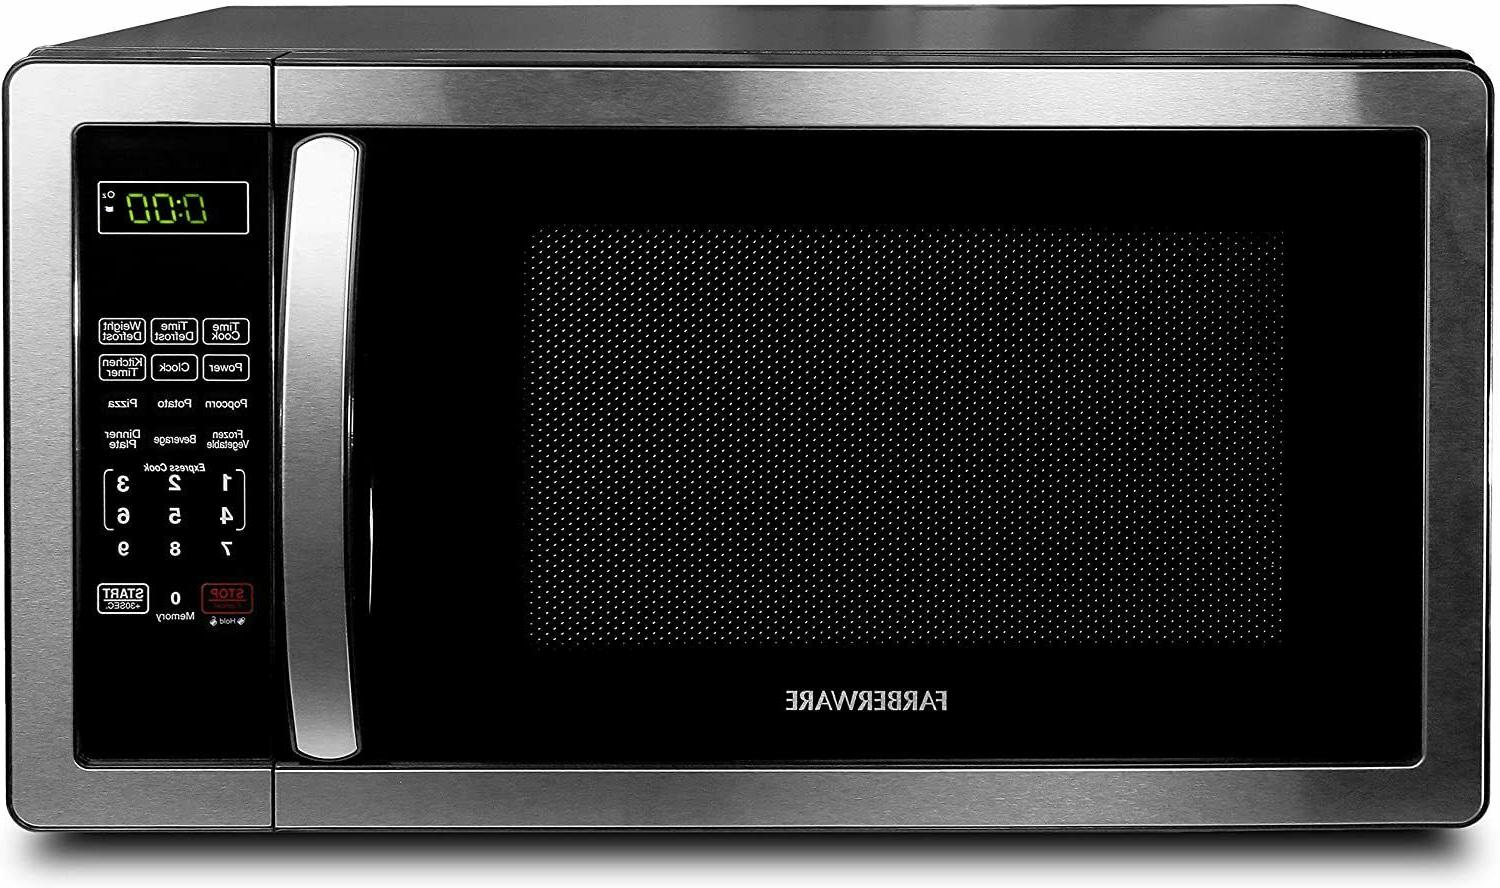 Farberware 1.1 Cu. Ft. Stainless Steel Microwave Oven With 6